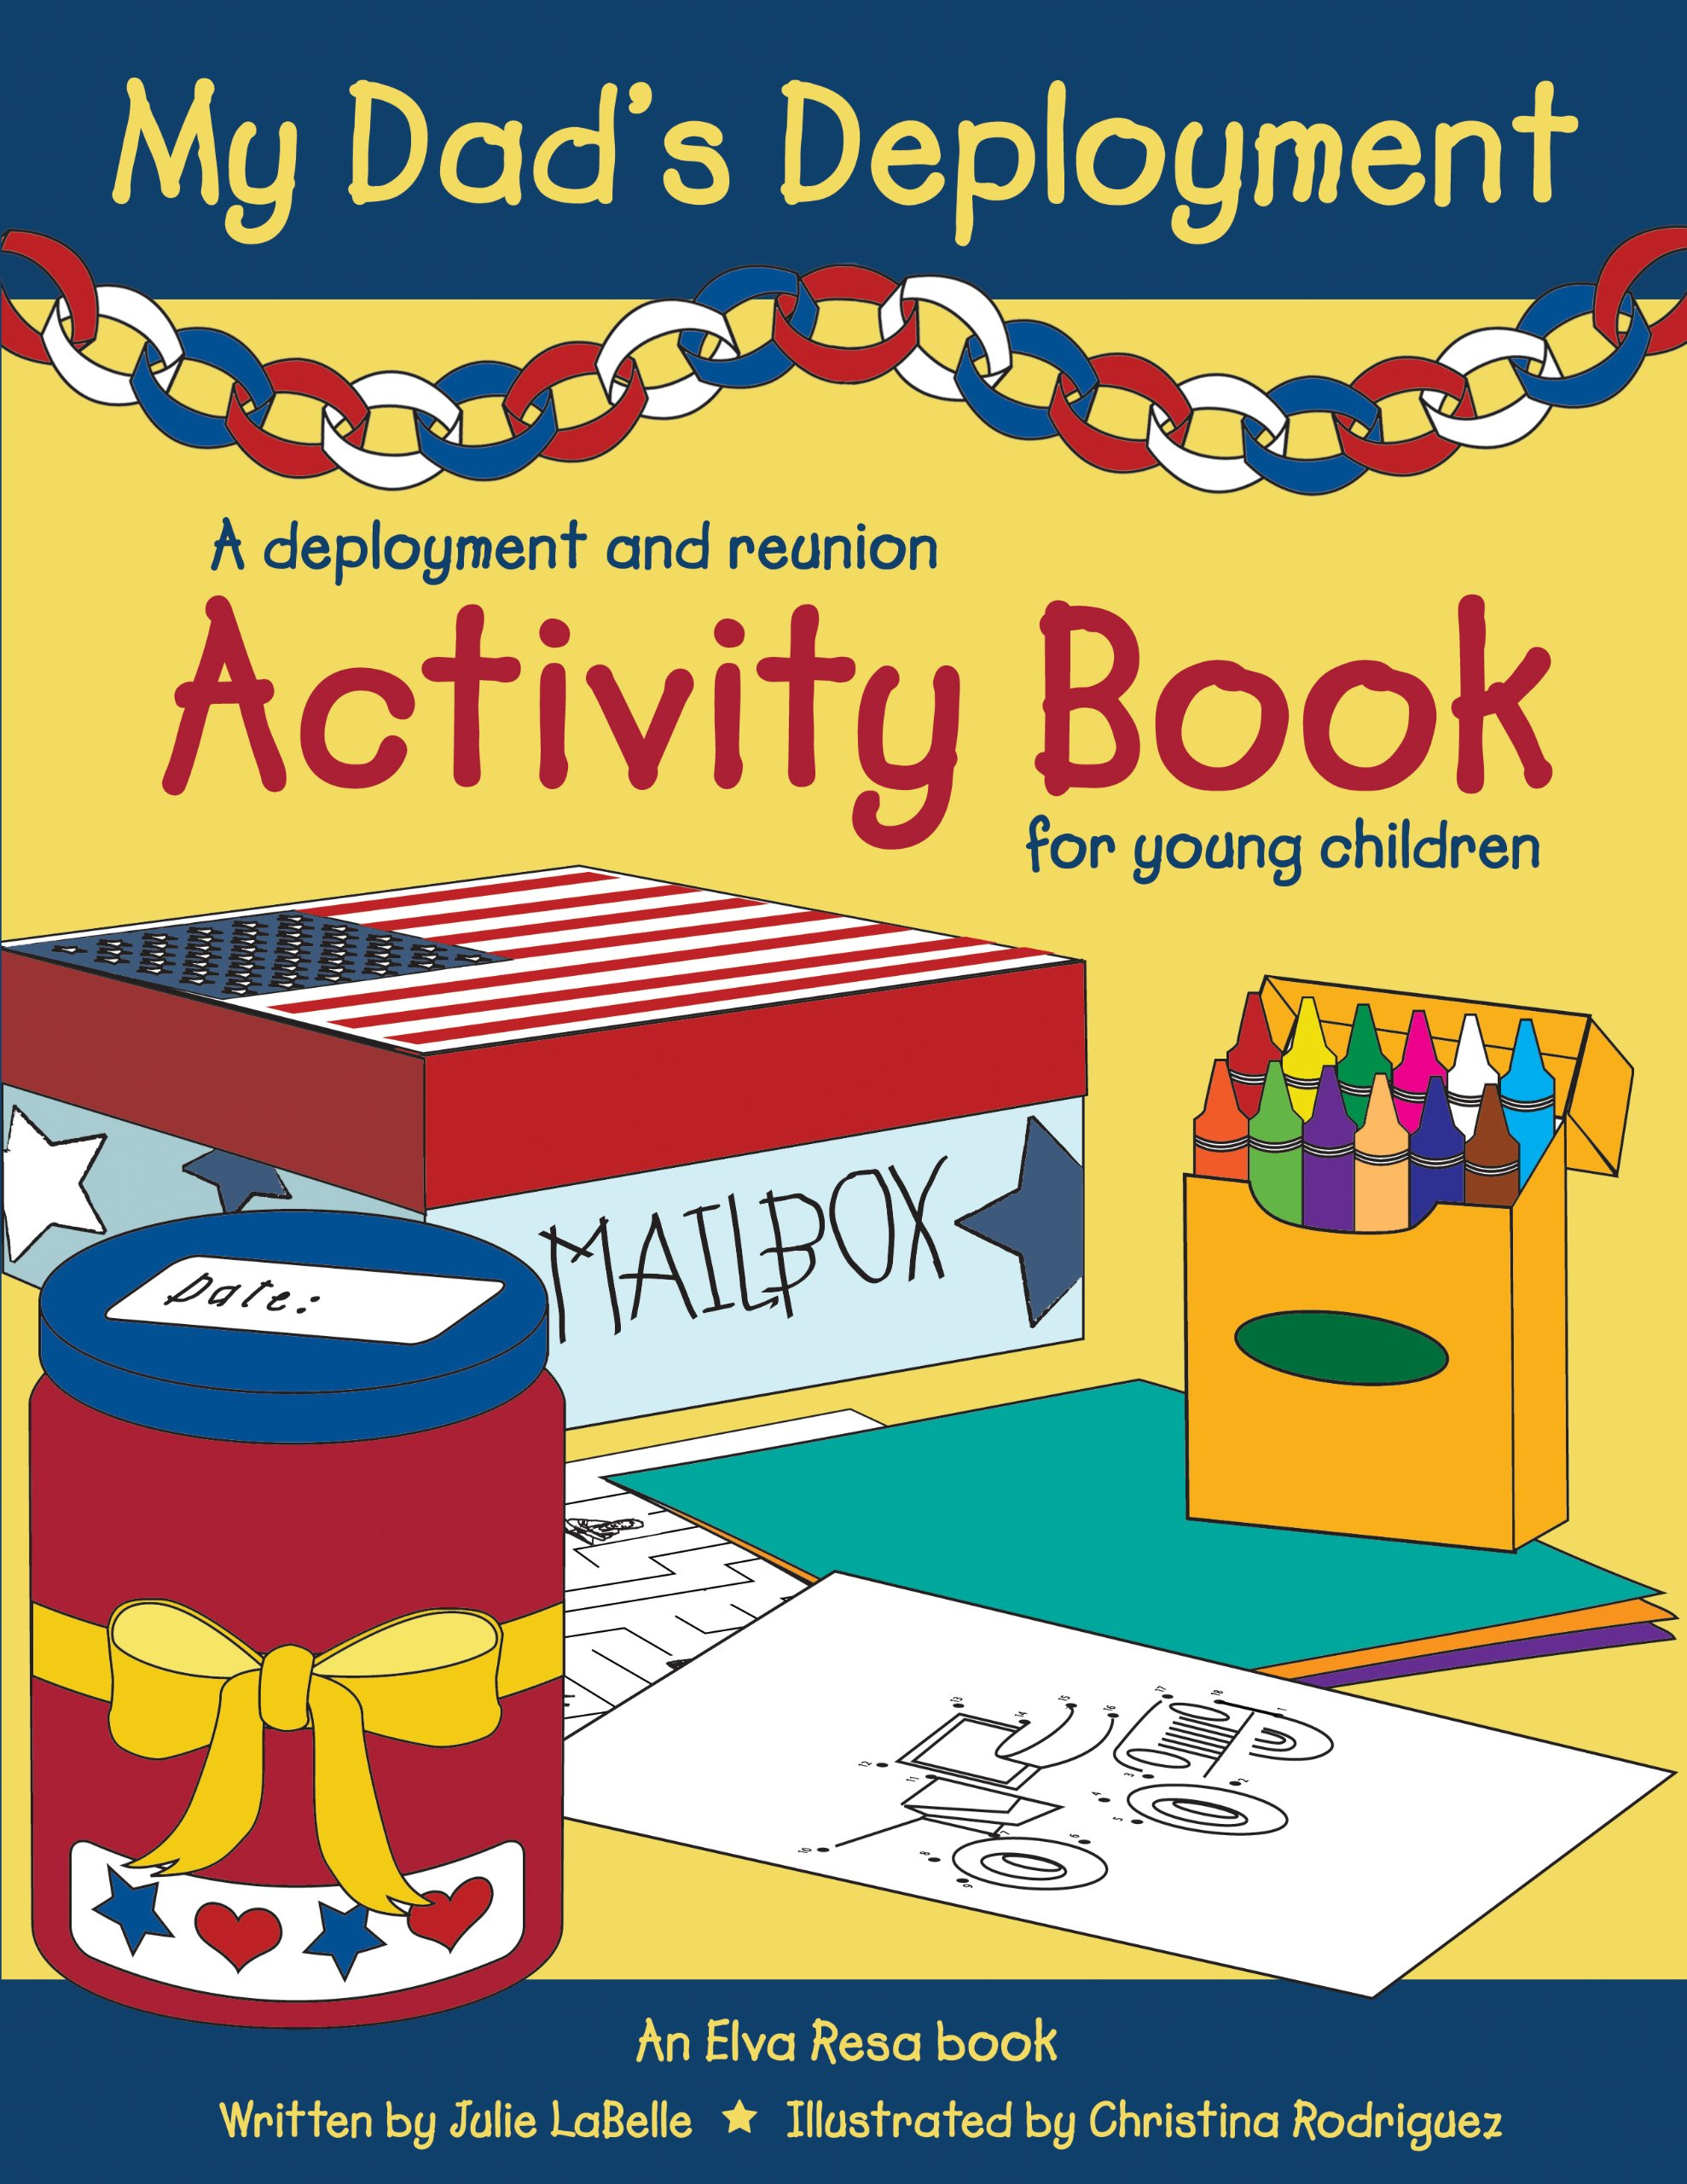 my dads deployment a deployment and reunion activity book for young children julie labelle christina rodriguez 9781934617076 amazoncom books - Activity Books For 4 Year Olds